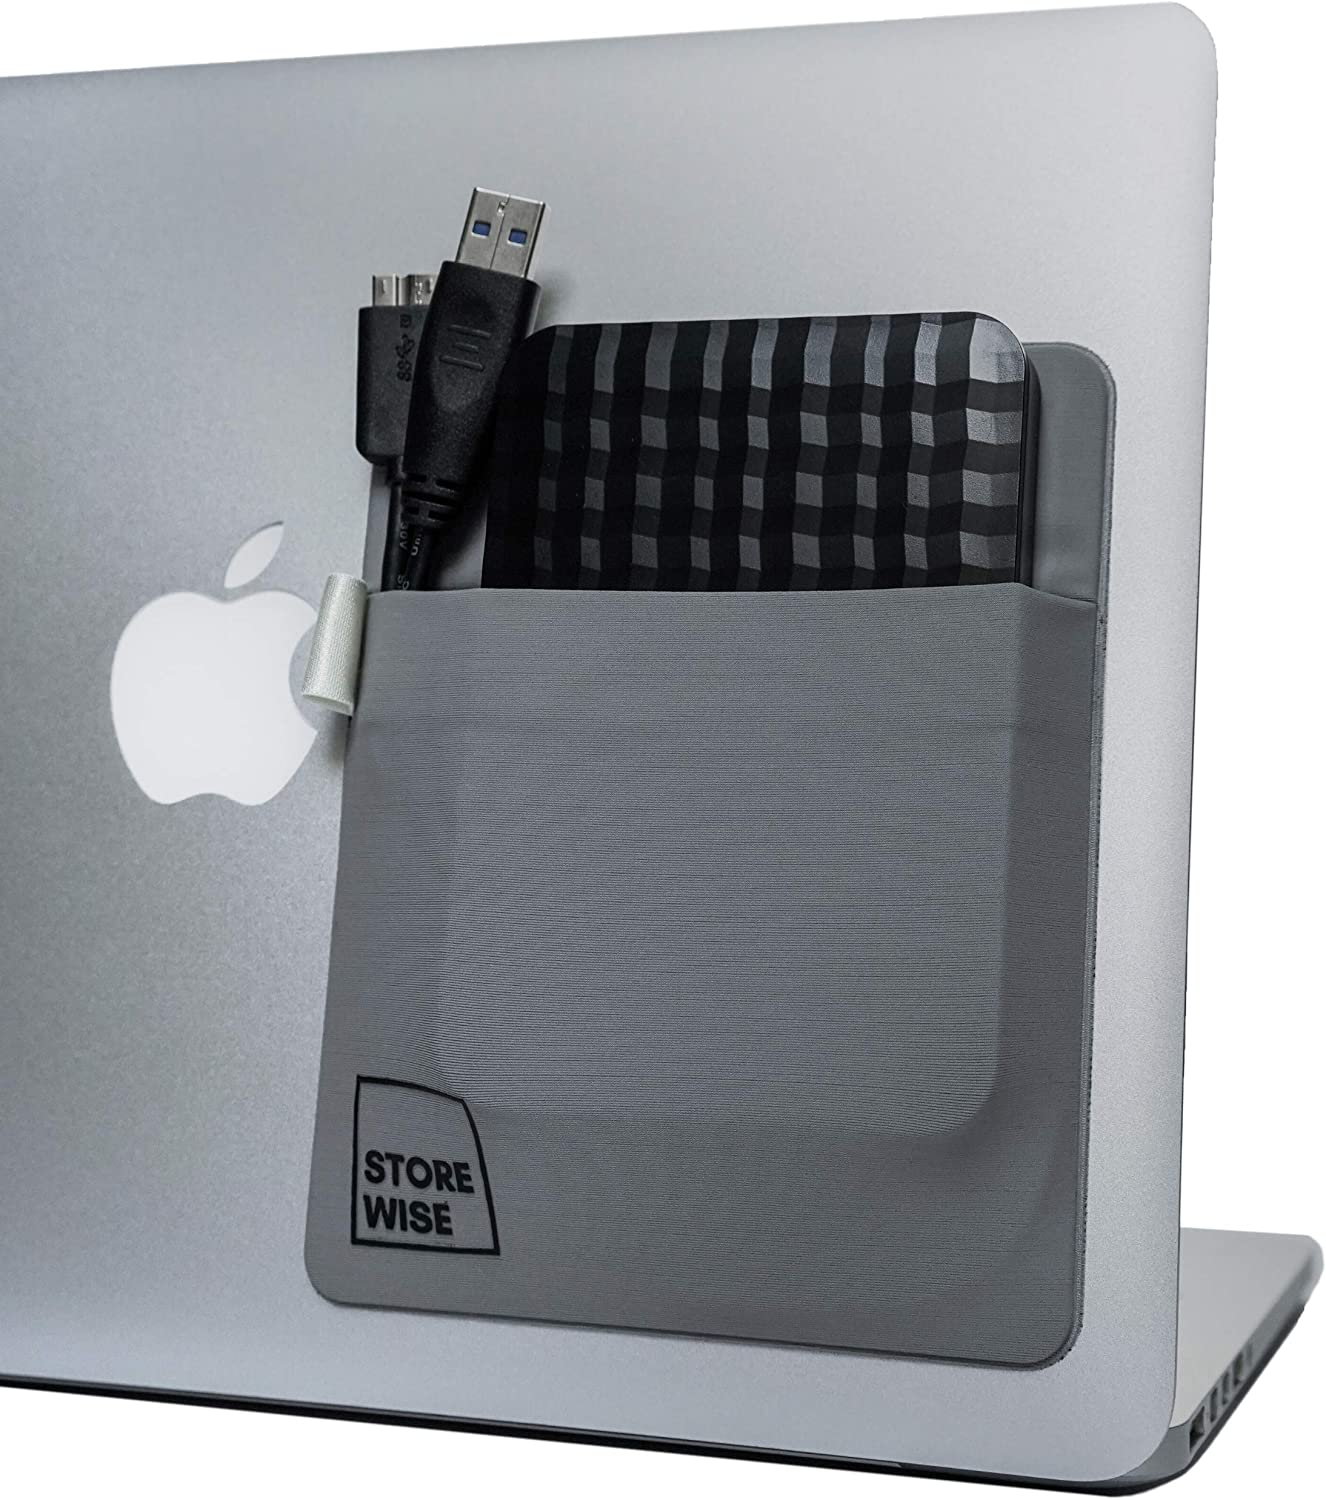 Laptop Organizer - Pocket Holder for External Hard Drive by StoreWise | Home Office Organizer | Modern Storage Accessories for Battery Pack, Wireless Mouse, Cables, Earphones and Pen (Grey)